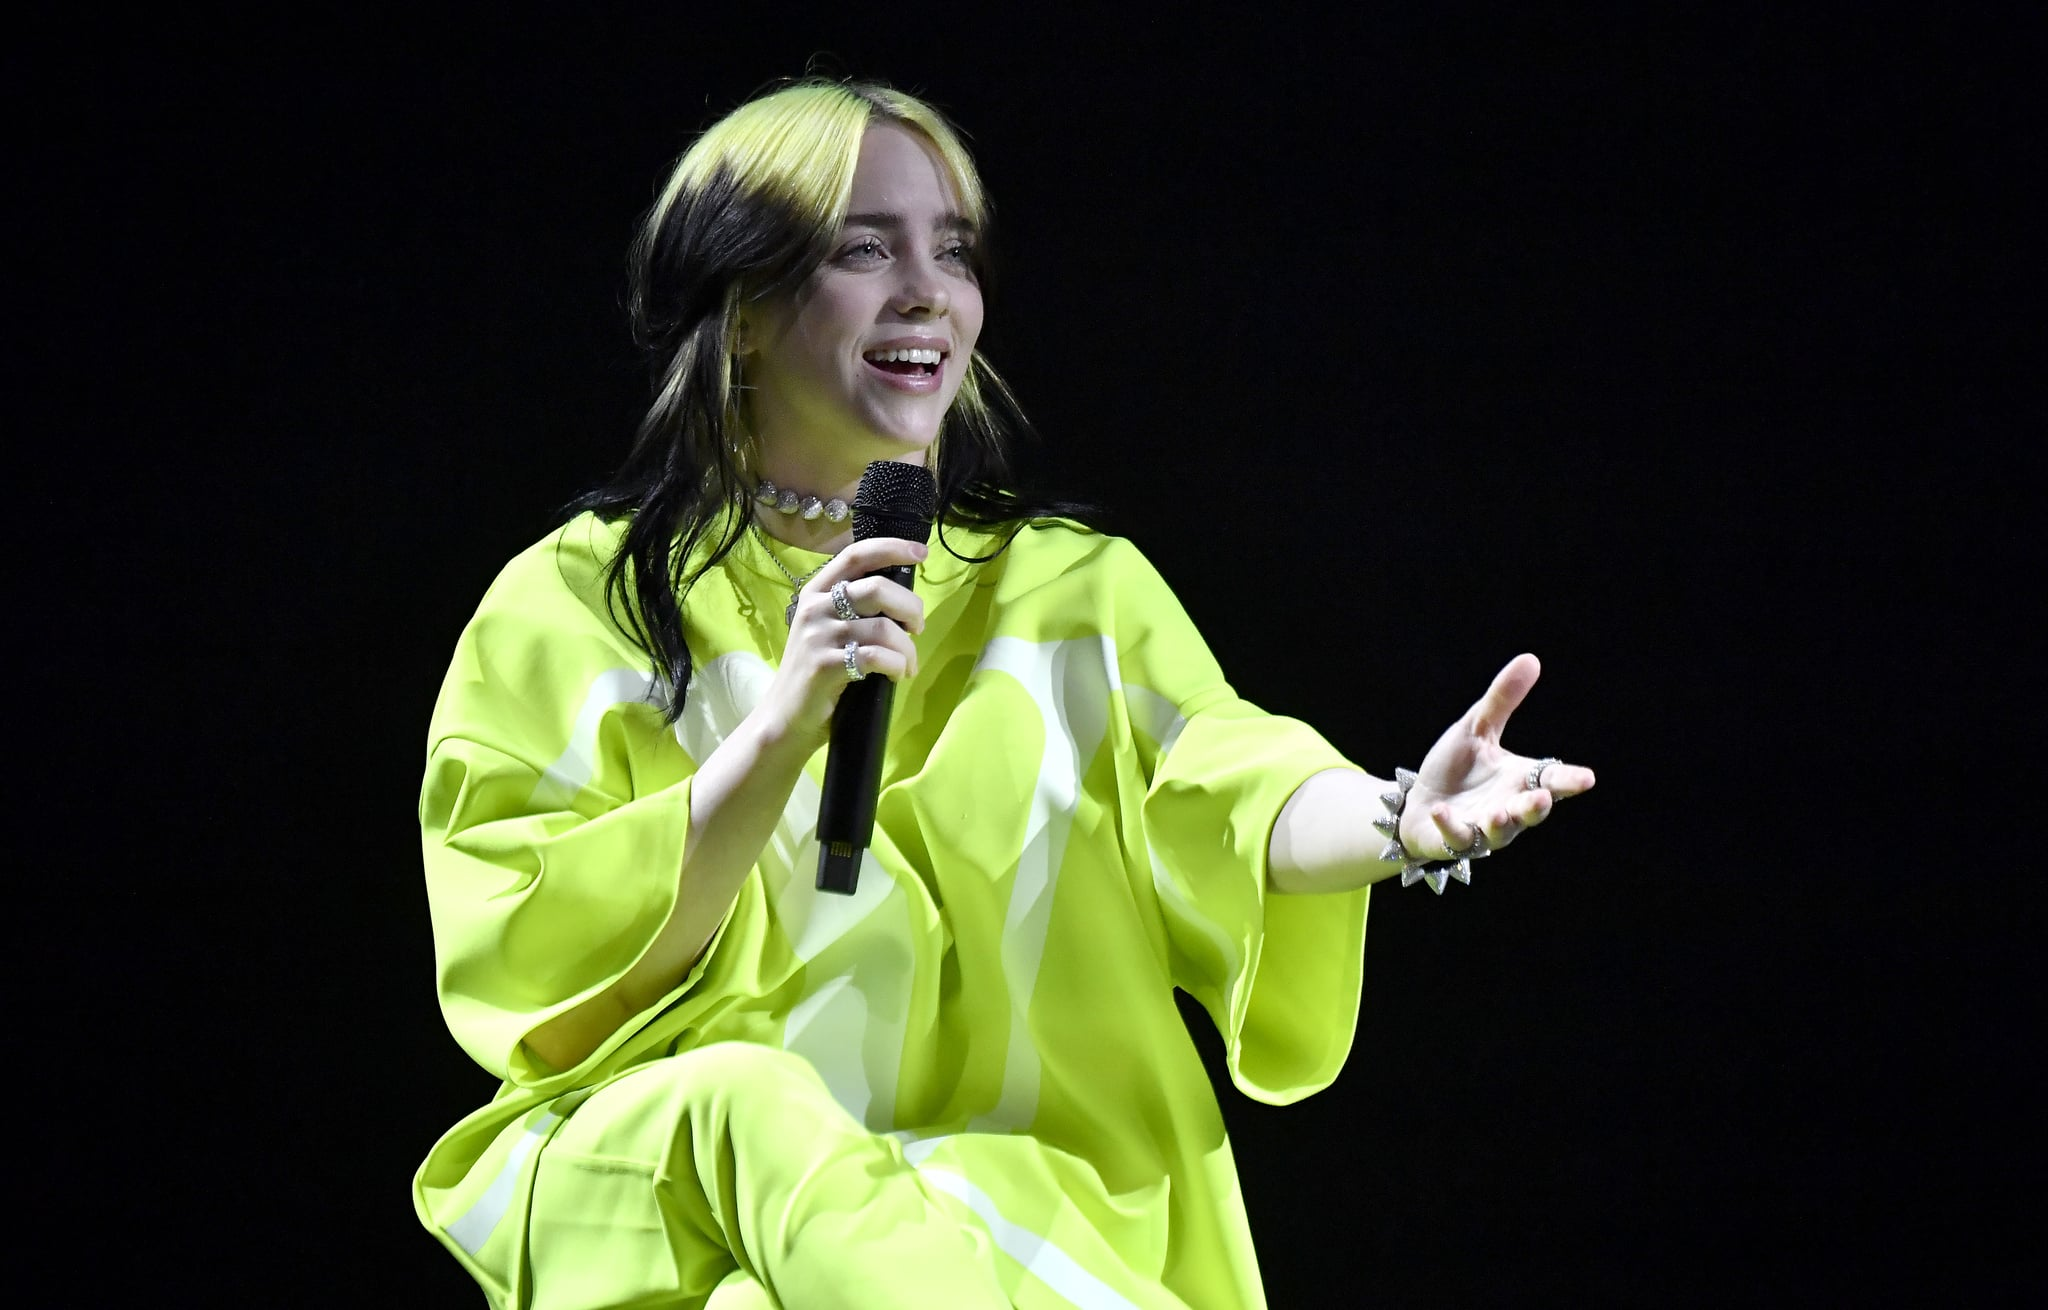 LOS ANGELES, CALIFORNIA - JANUARY 23: Billie Eilish performs onstage at Spotify Hosts